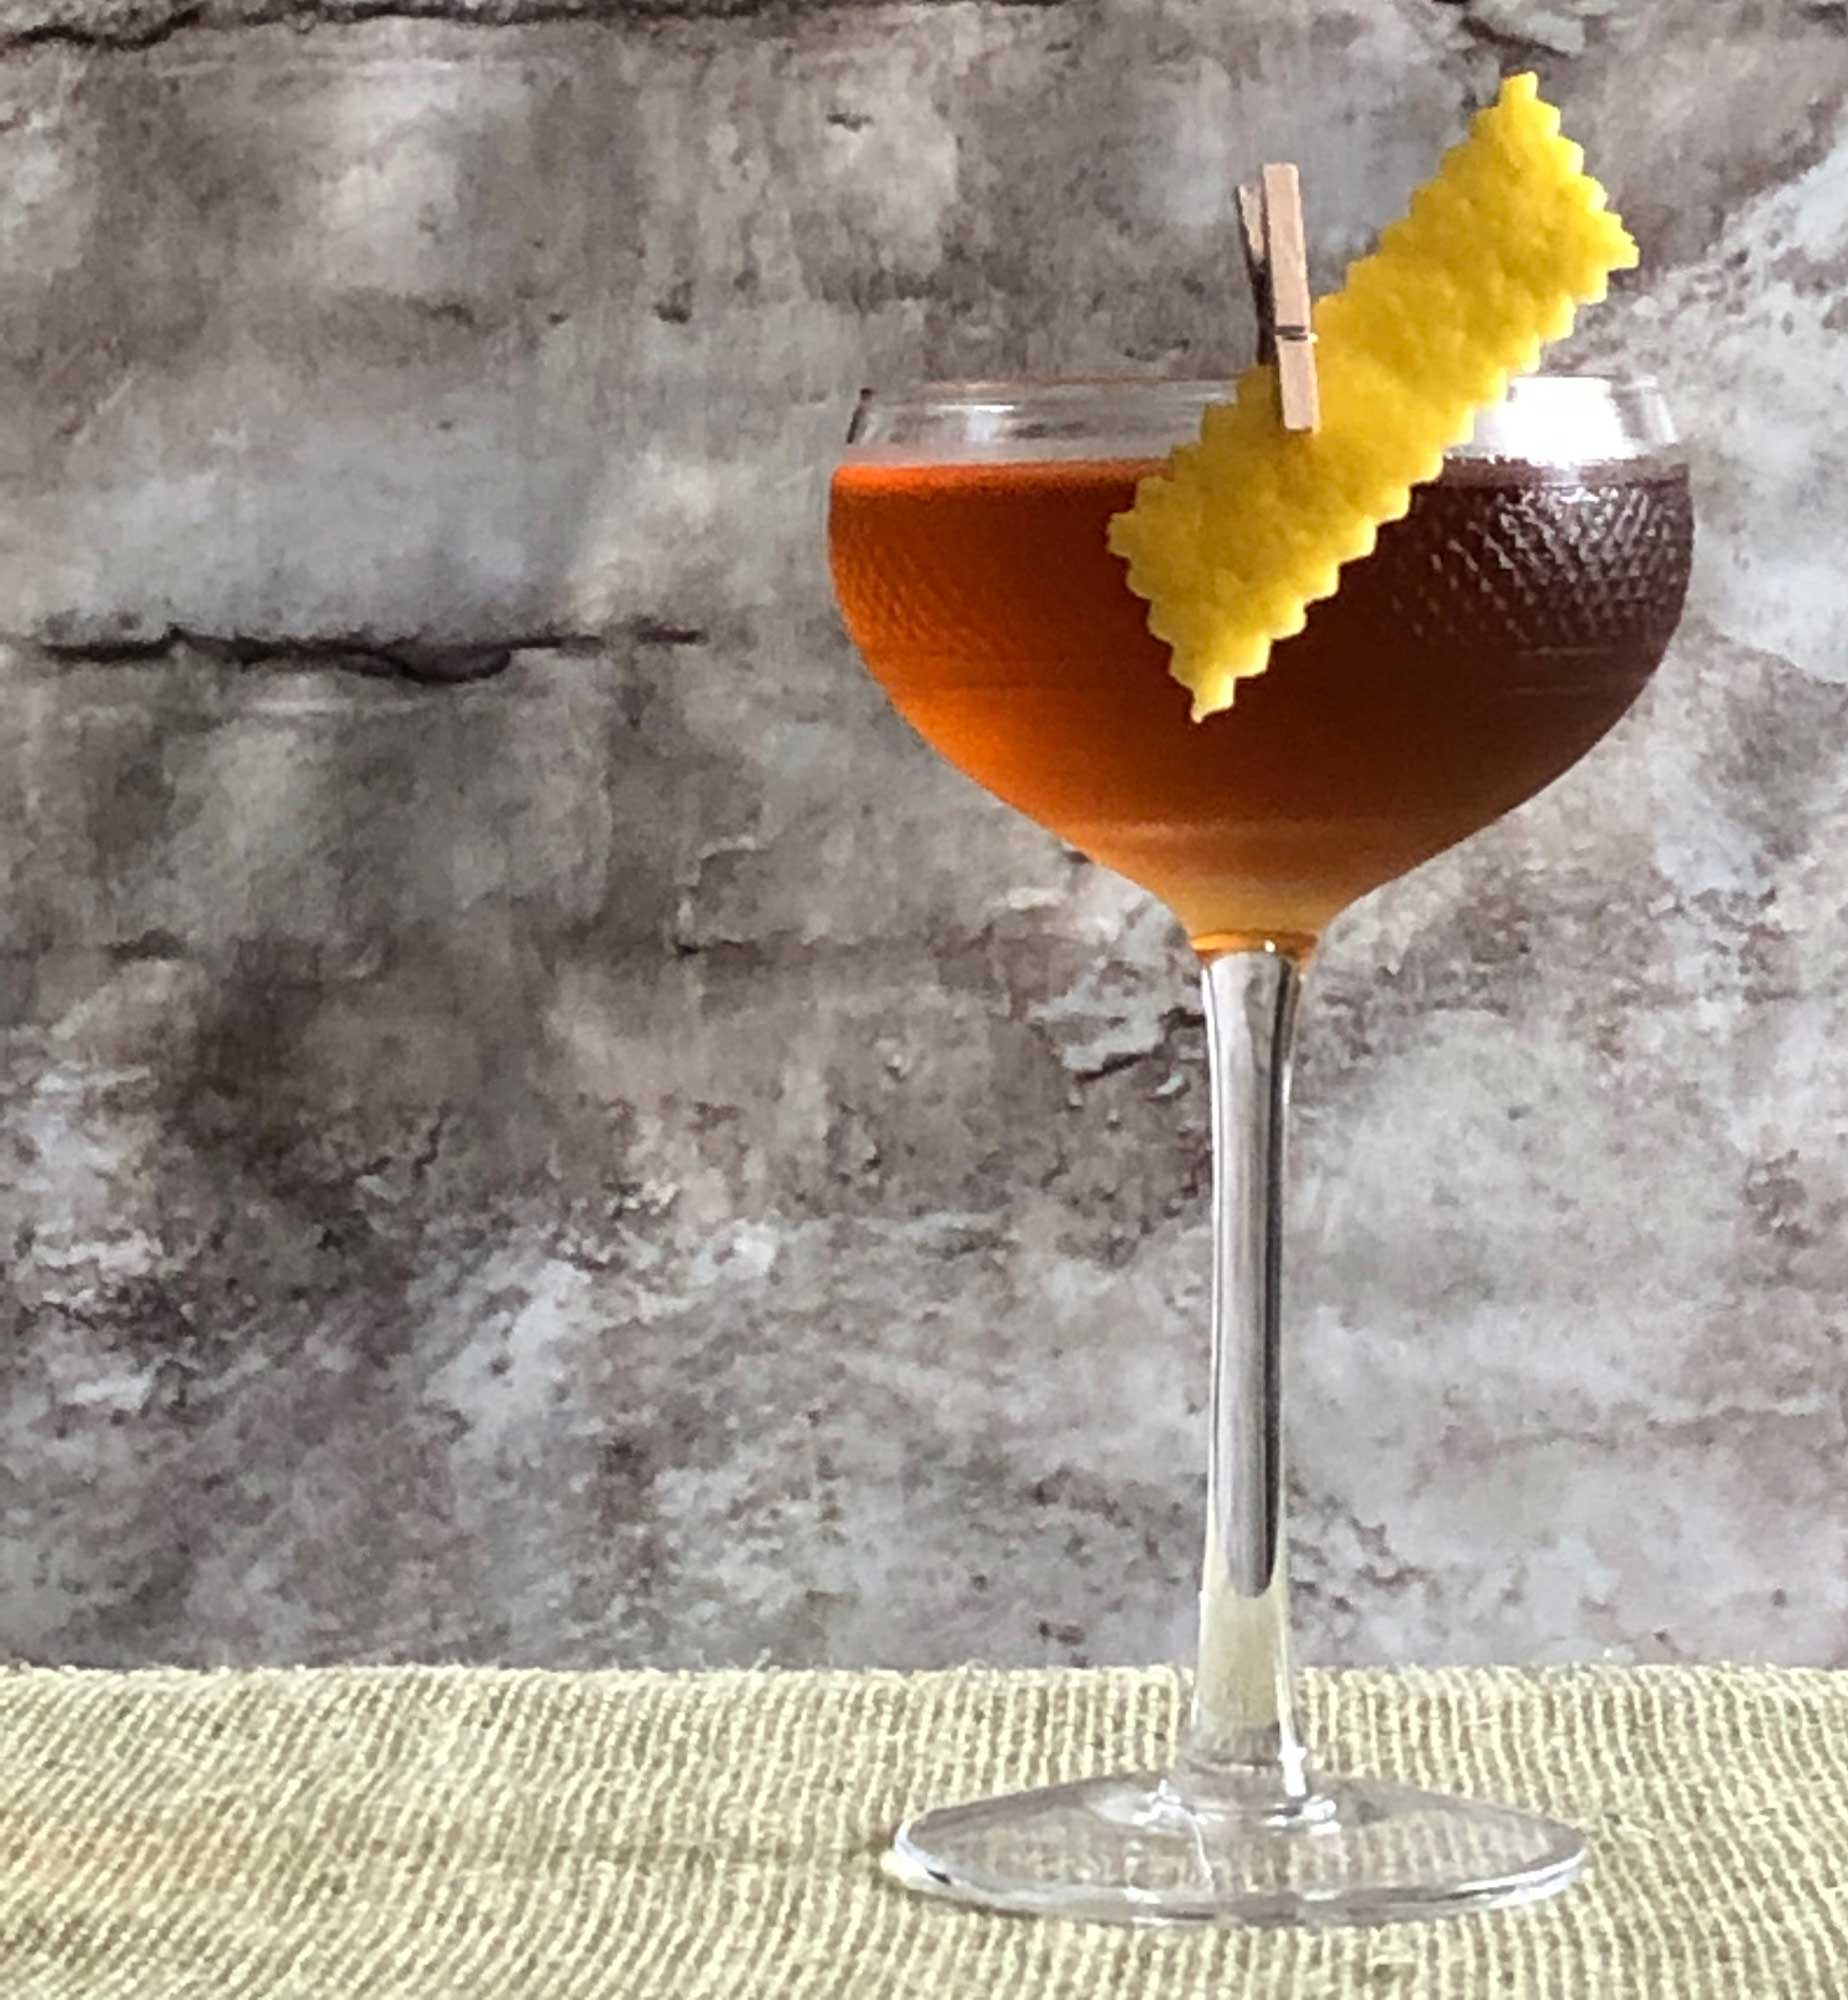 An example of the Jewel Cocktail, the mixed drink (cocktail) featuring Dolin Génépy le Chamois Liqueur, Hayman's London Dry Gin, Cocchi Vermouth di Torino, and orange bitters; photo by Lee Edwards